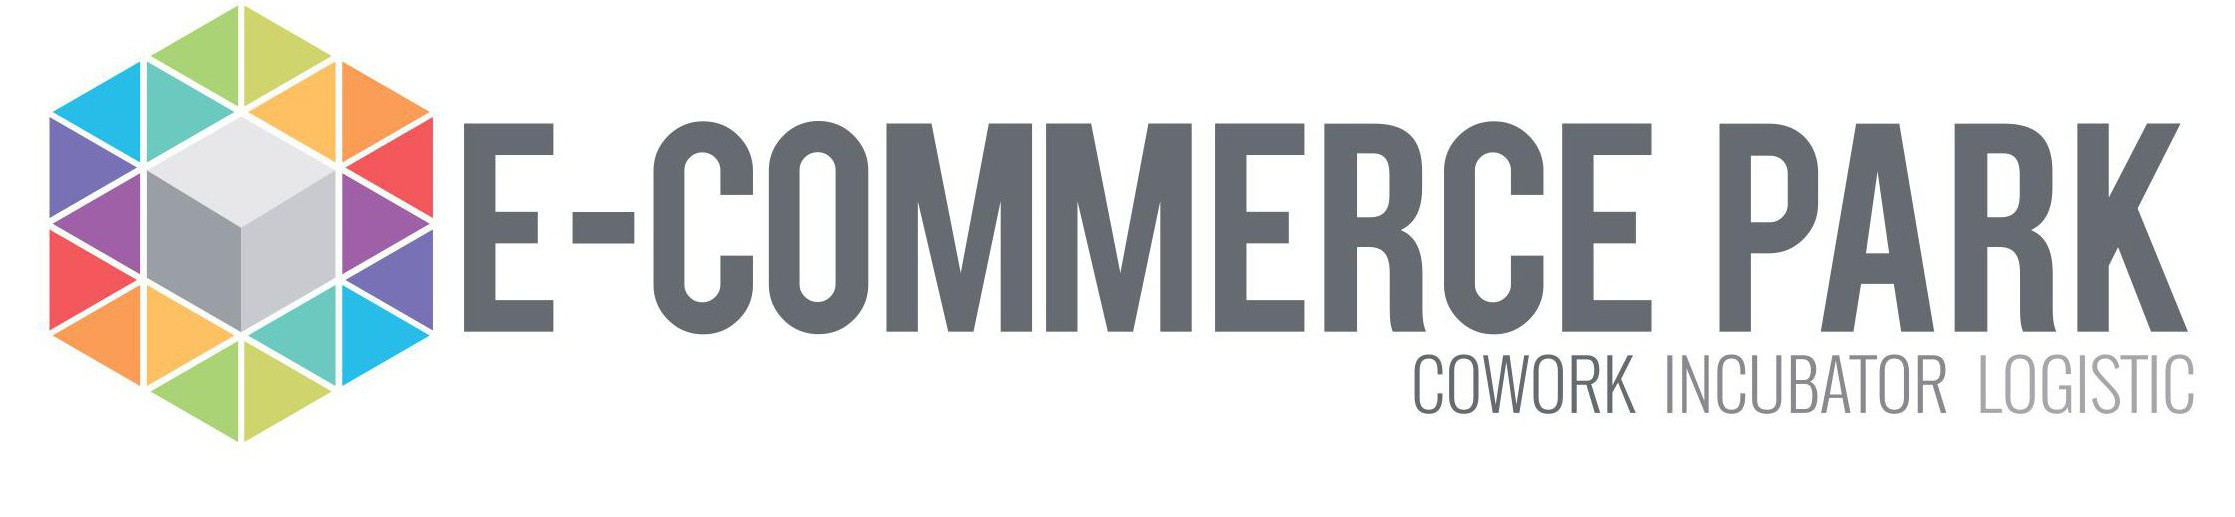 E-commerce Park of Sweden